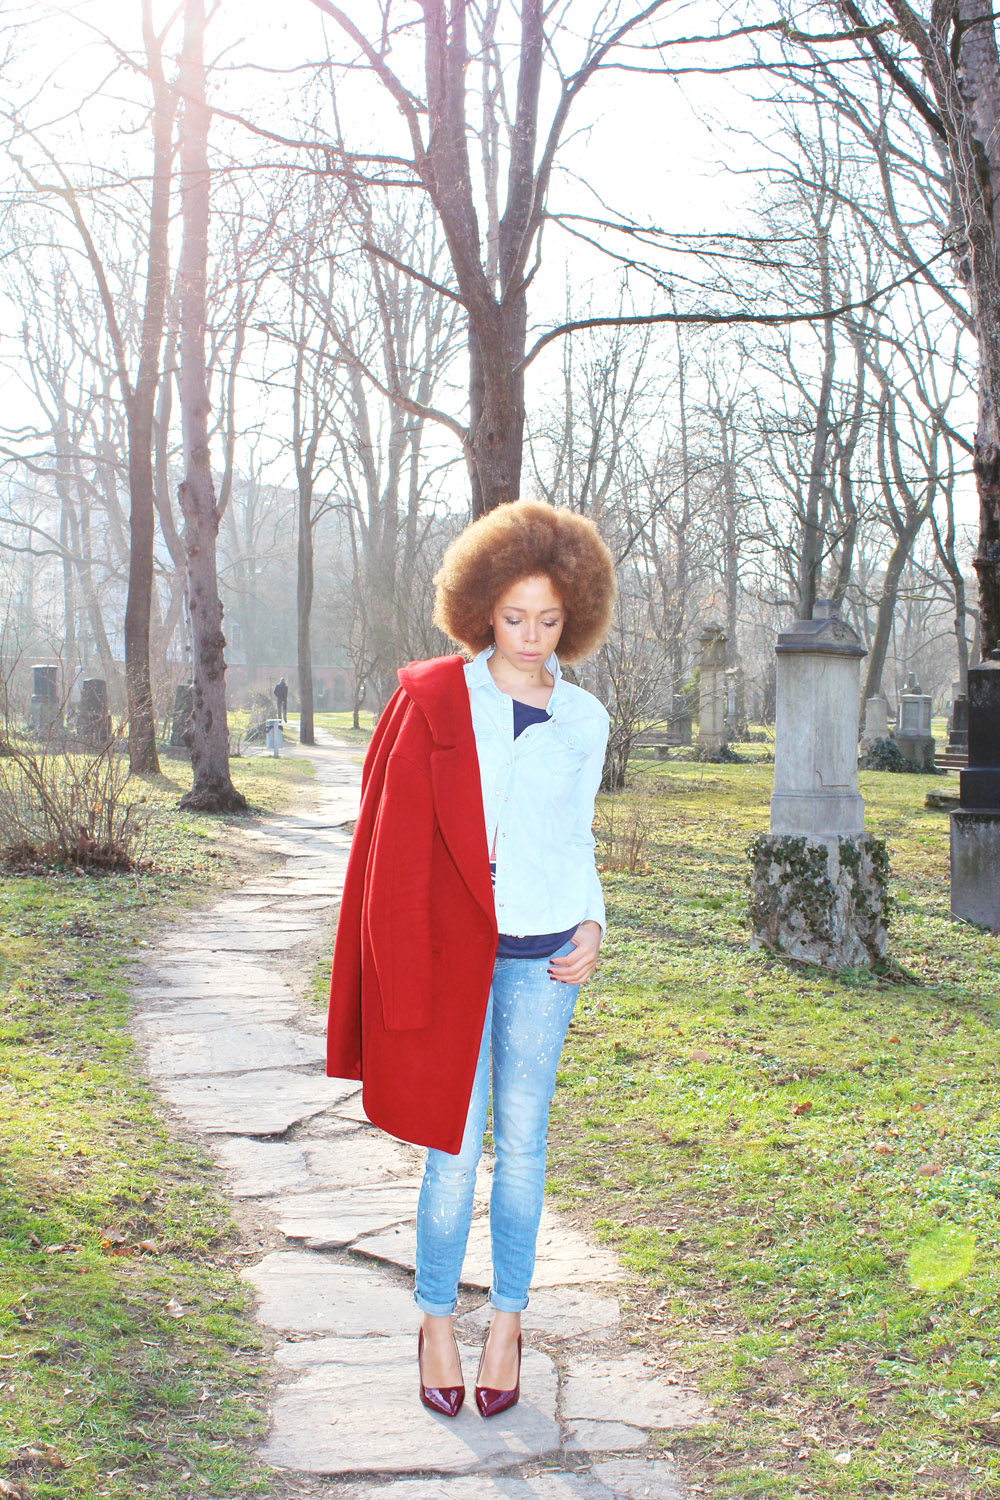 fatimayarie-blue-jeans-mango-afro-red-coat-heels-munichblogger-img_2887